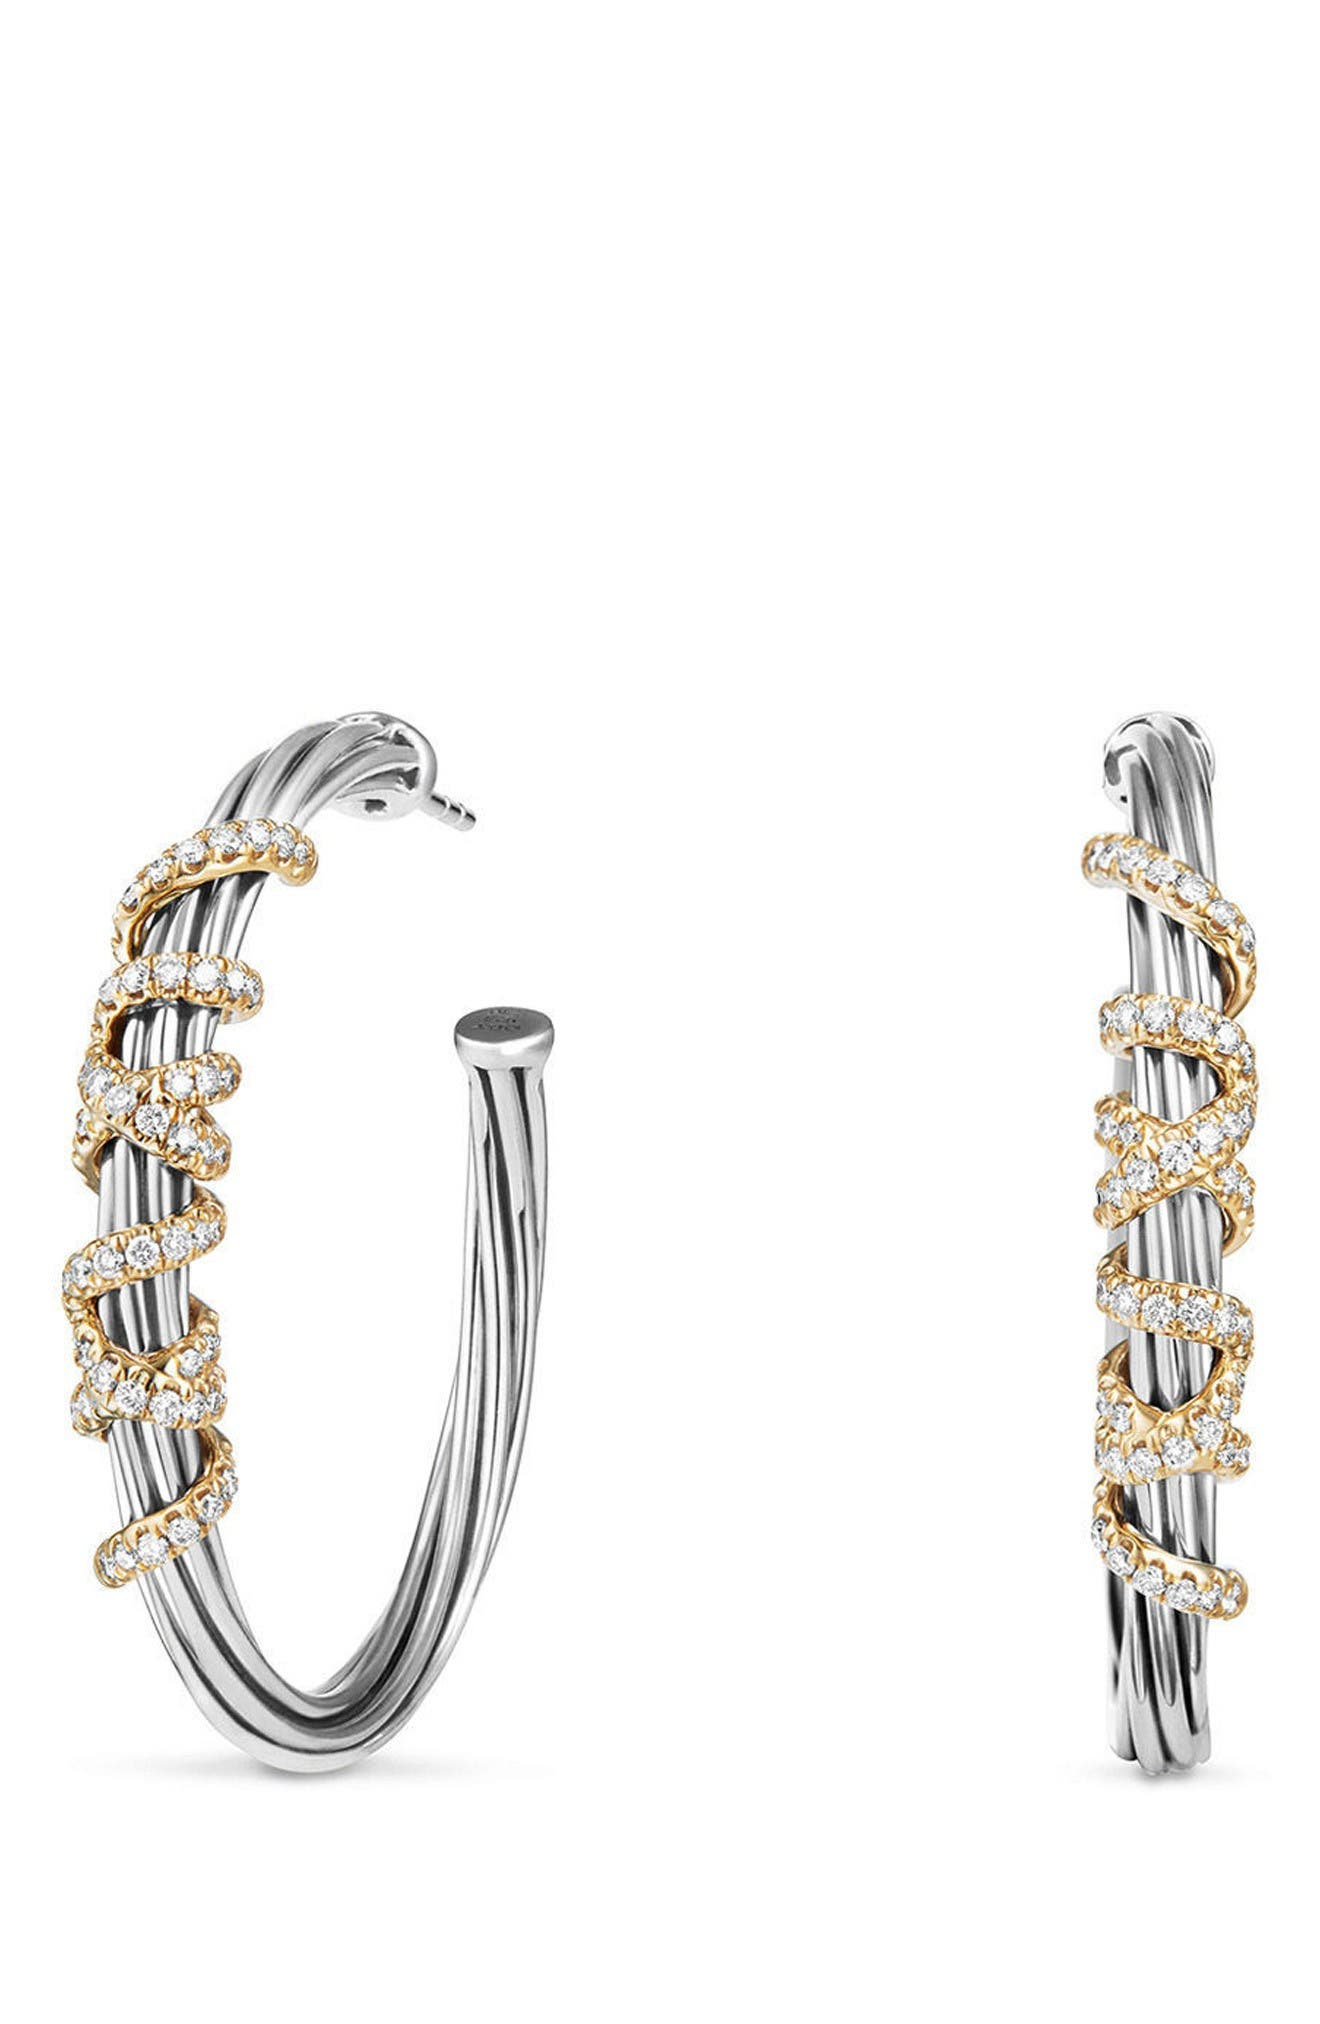 Main Image - David Yurman Helena Large Hoop Earrings with Diamonds & 18K Gold